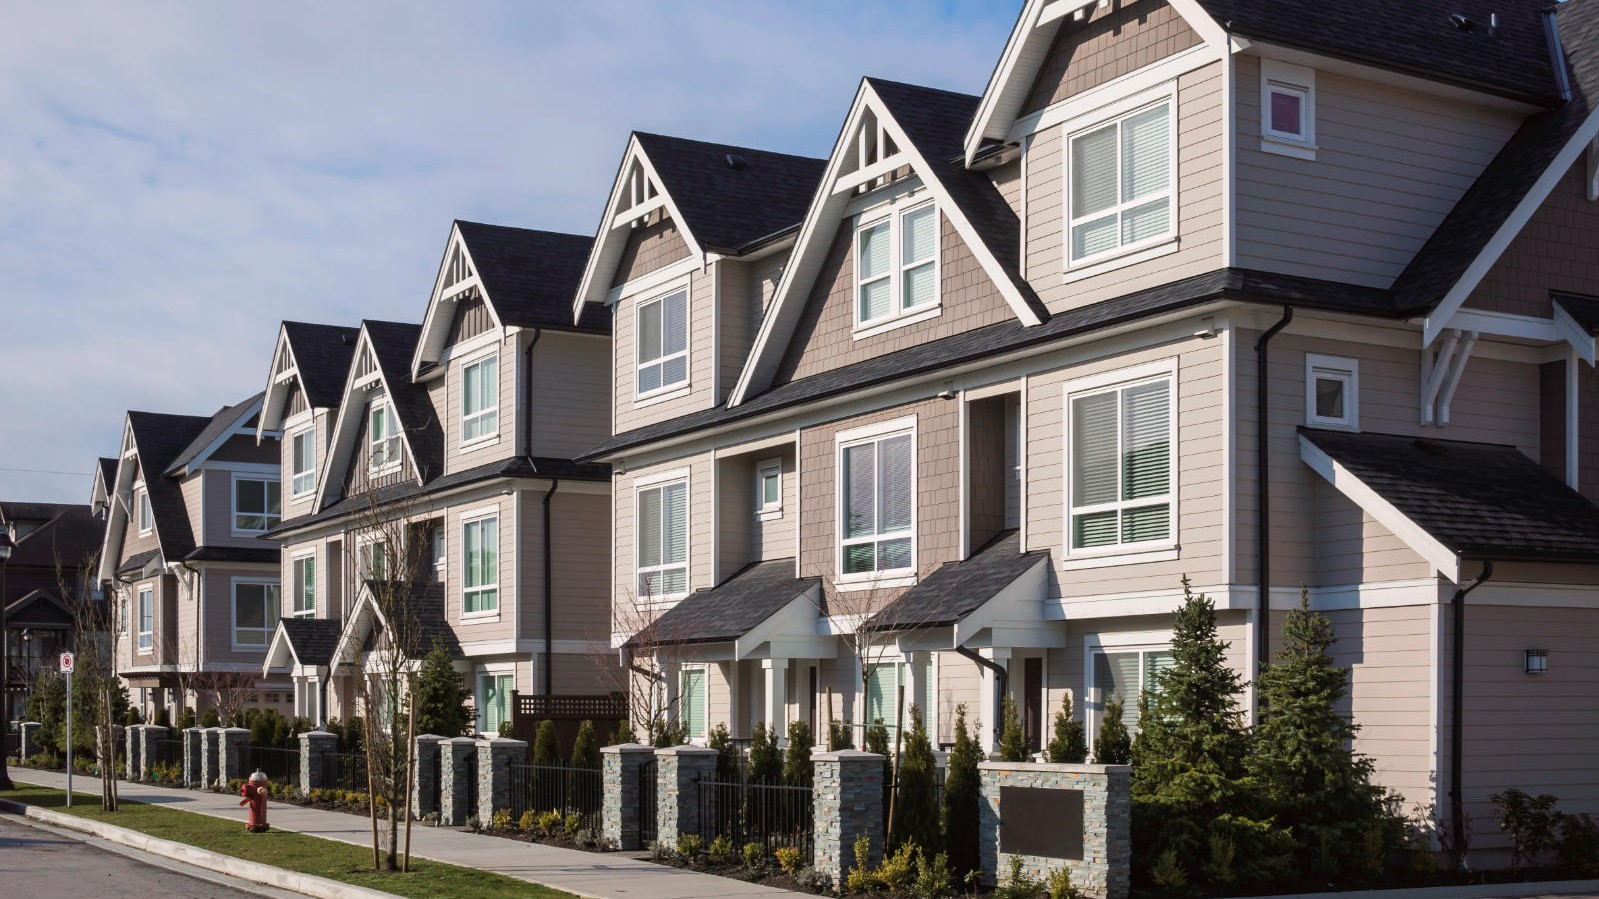 Townhouse and Its Advantages